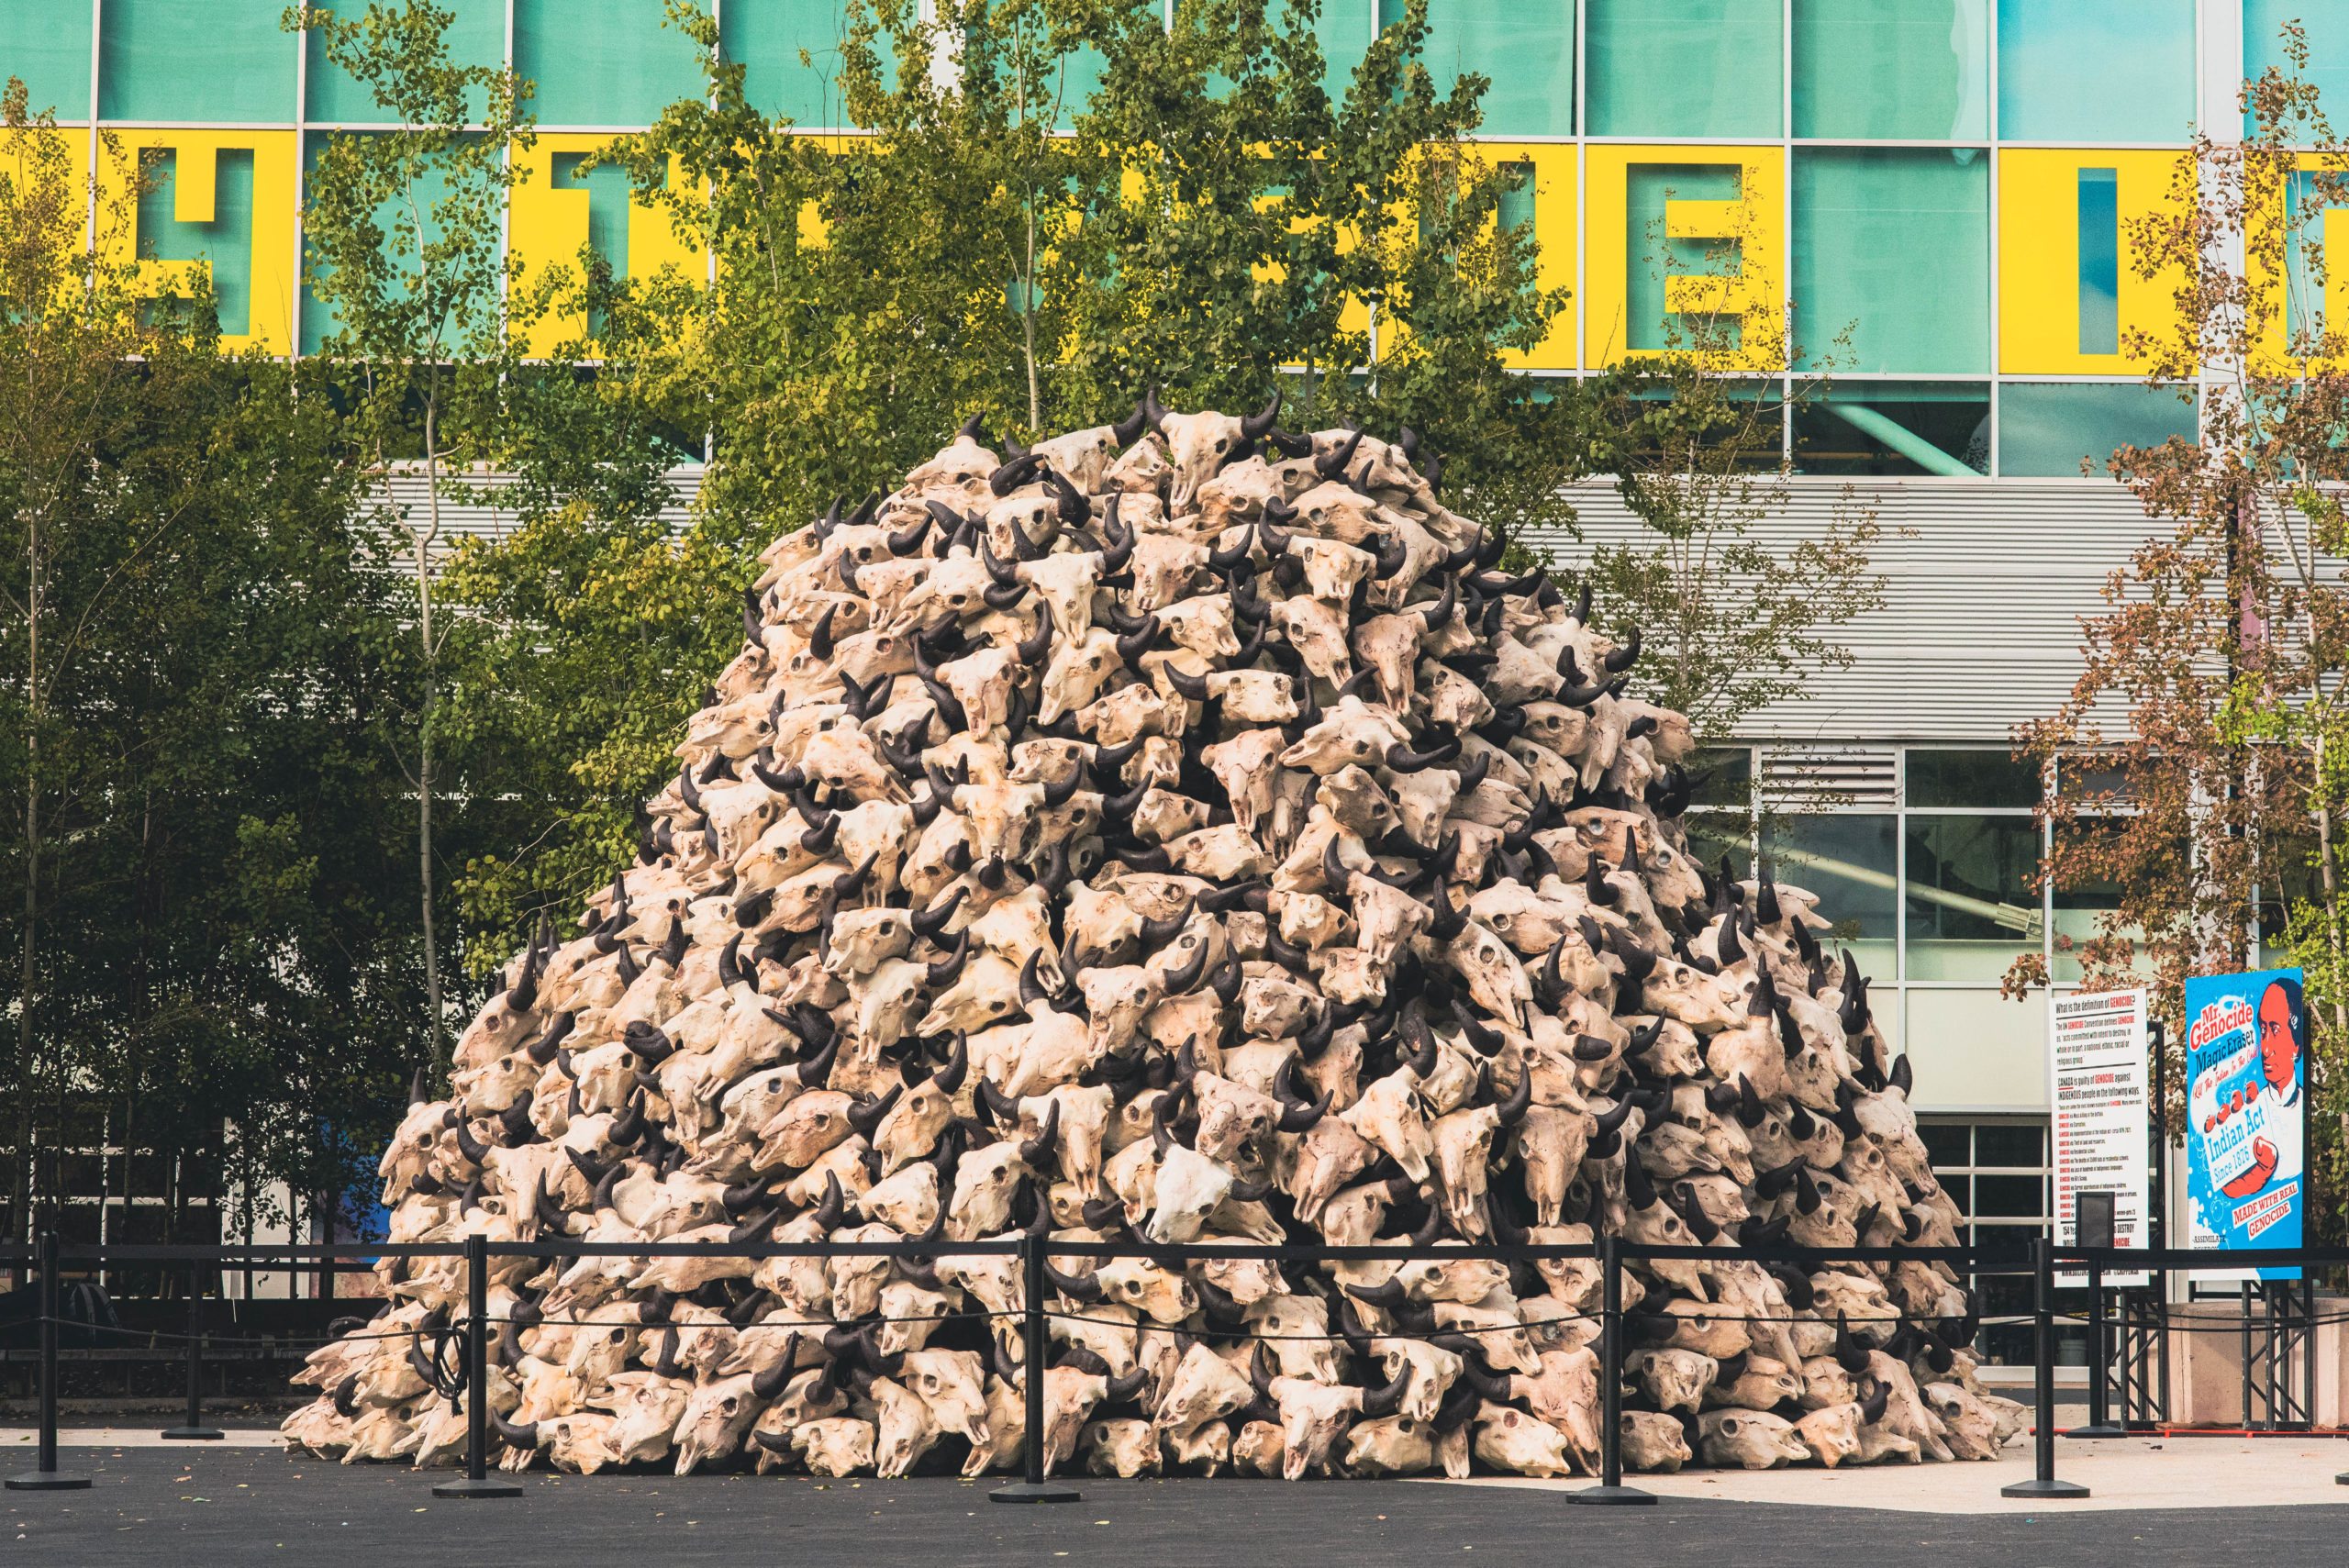 A photo of Jay Soule | CHIPPEWAR's art installation depicting a mound of buffalo skulls at Harbourfront Centre.